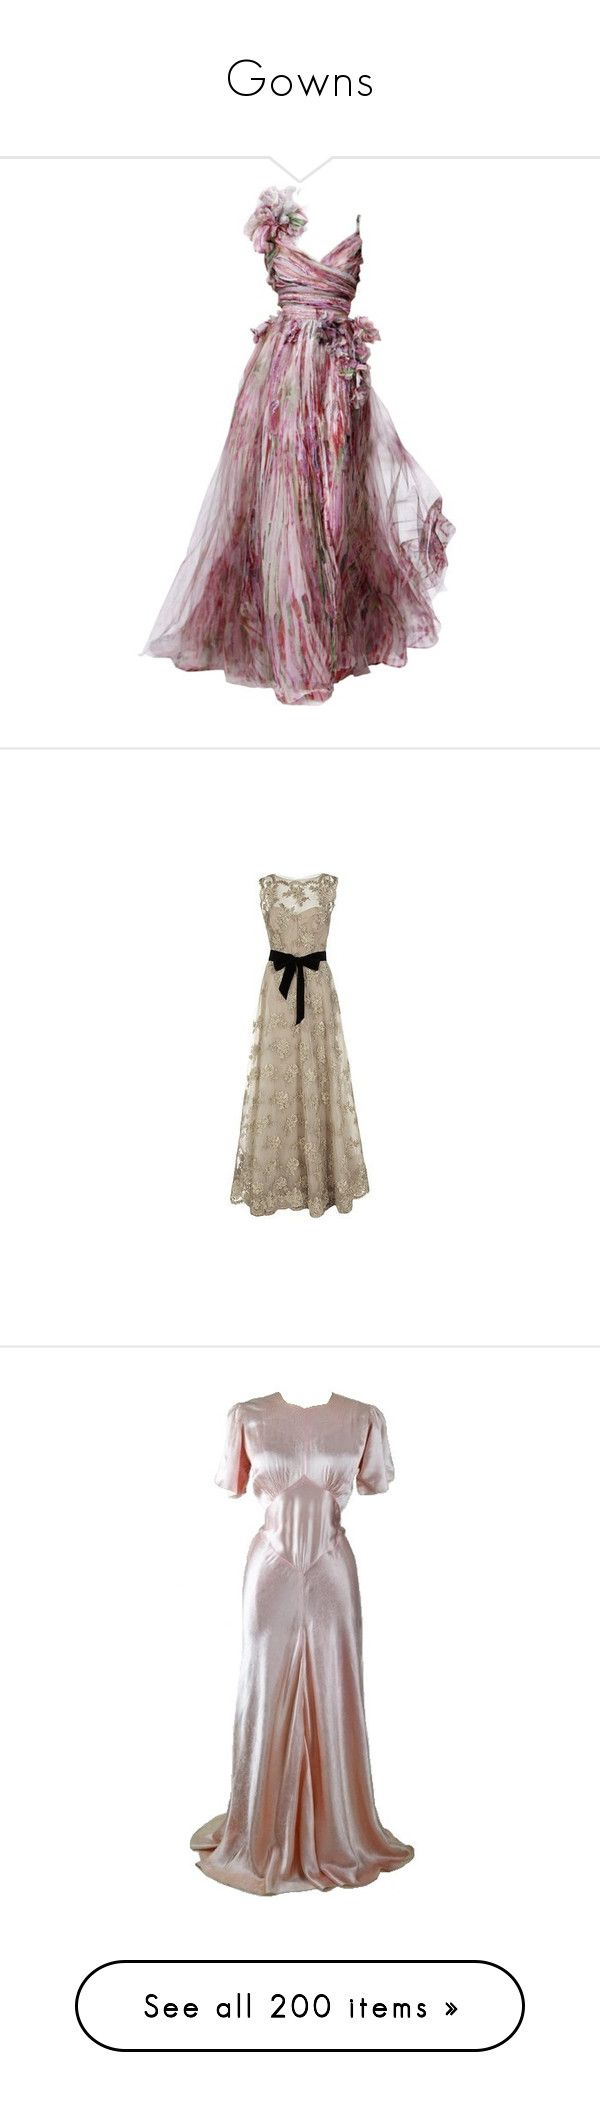 """""""Gowns"""" by stephanielee4 ❤ liked on Polyvore featuring dresses, gowns, long dress, vestidos, long dresses, brown evening gowns, vintage ball gowns, brown gown, rachel gilbert gowns and gown"""